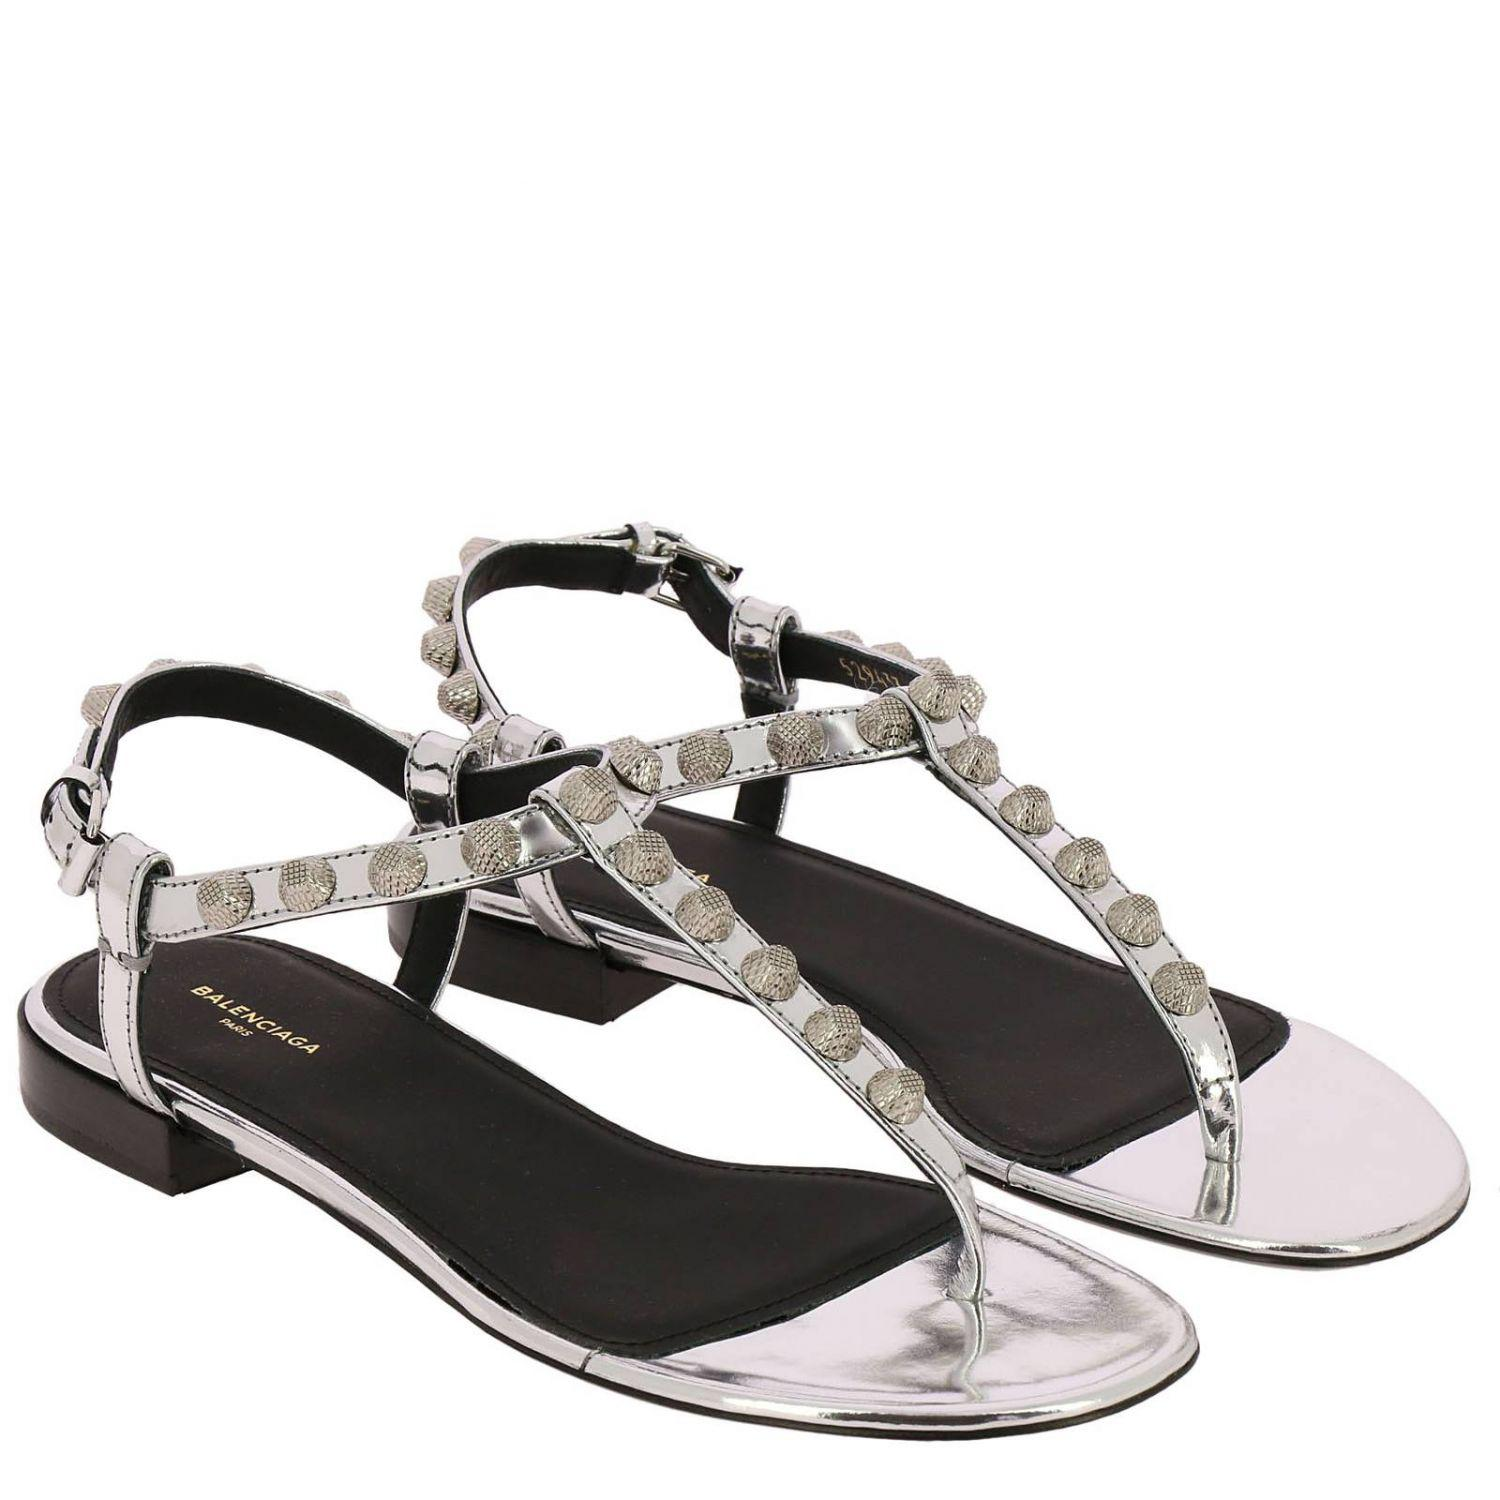 b4cc782bde02 Balenciaga - Metallic Flat Sandals Shoes Women - Lyst. View fullscreen